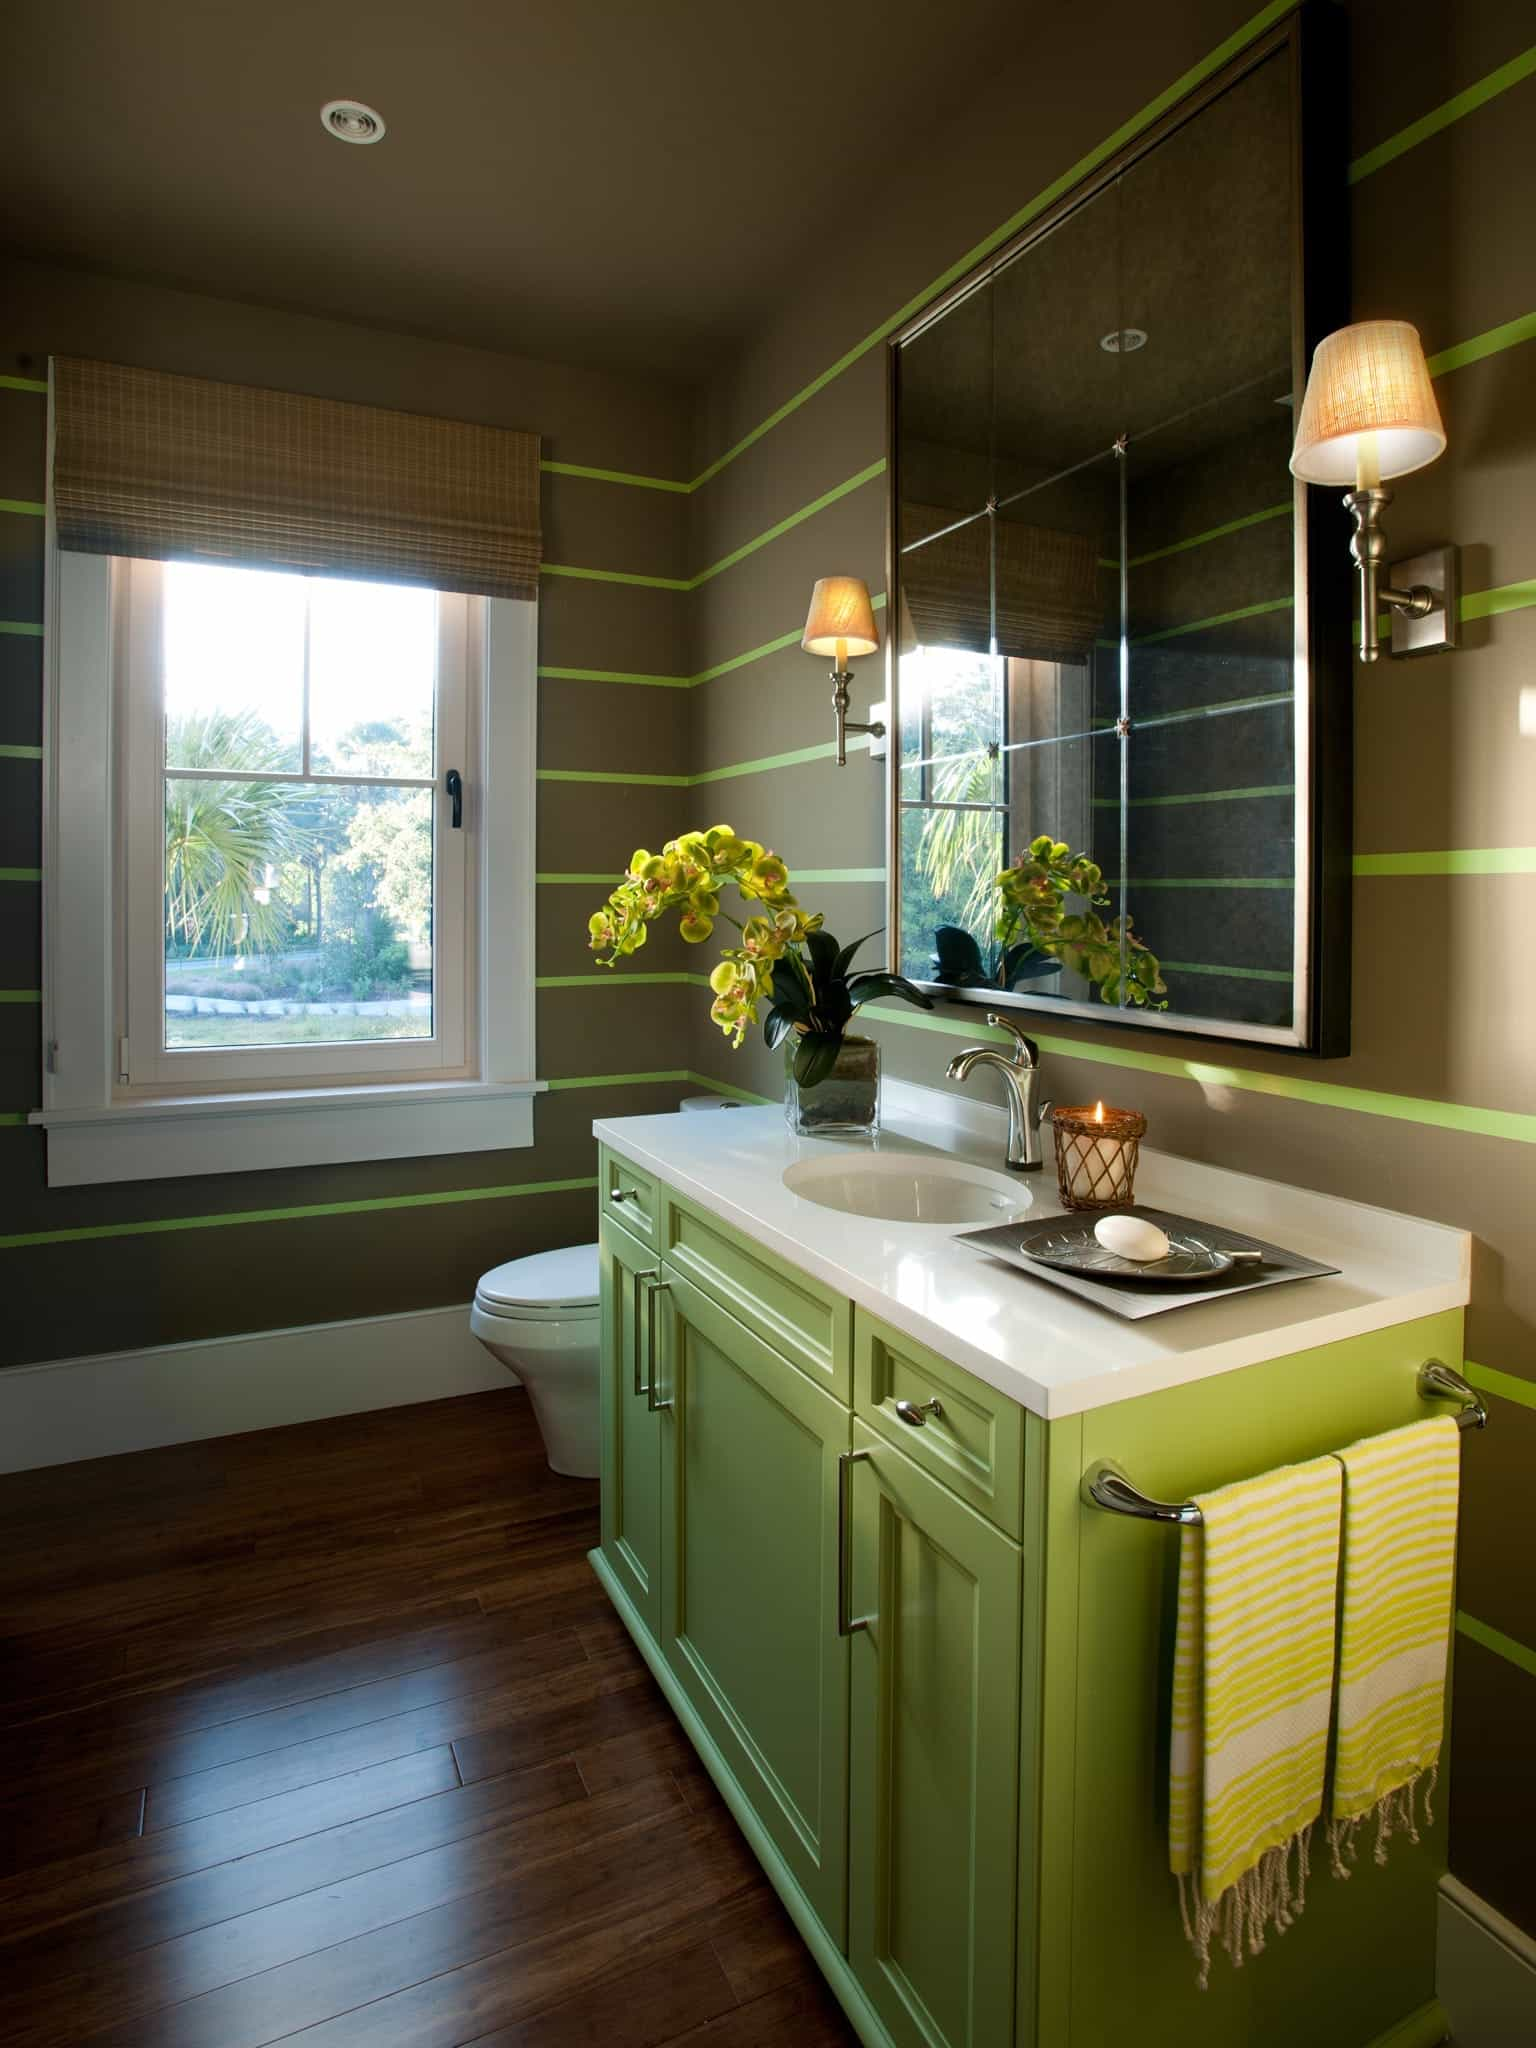 Bathroom With Green Vintage Vanity And Striped Walls (Image 2 of 12)